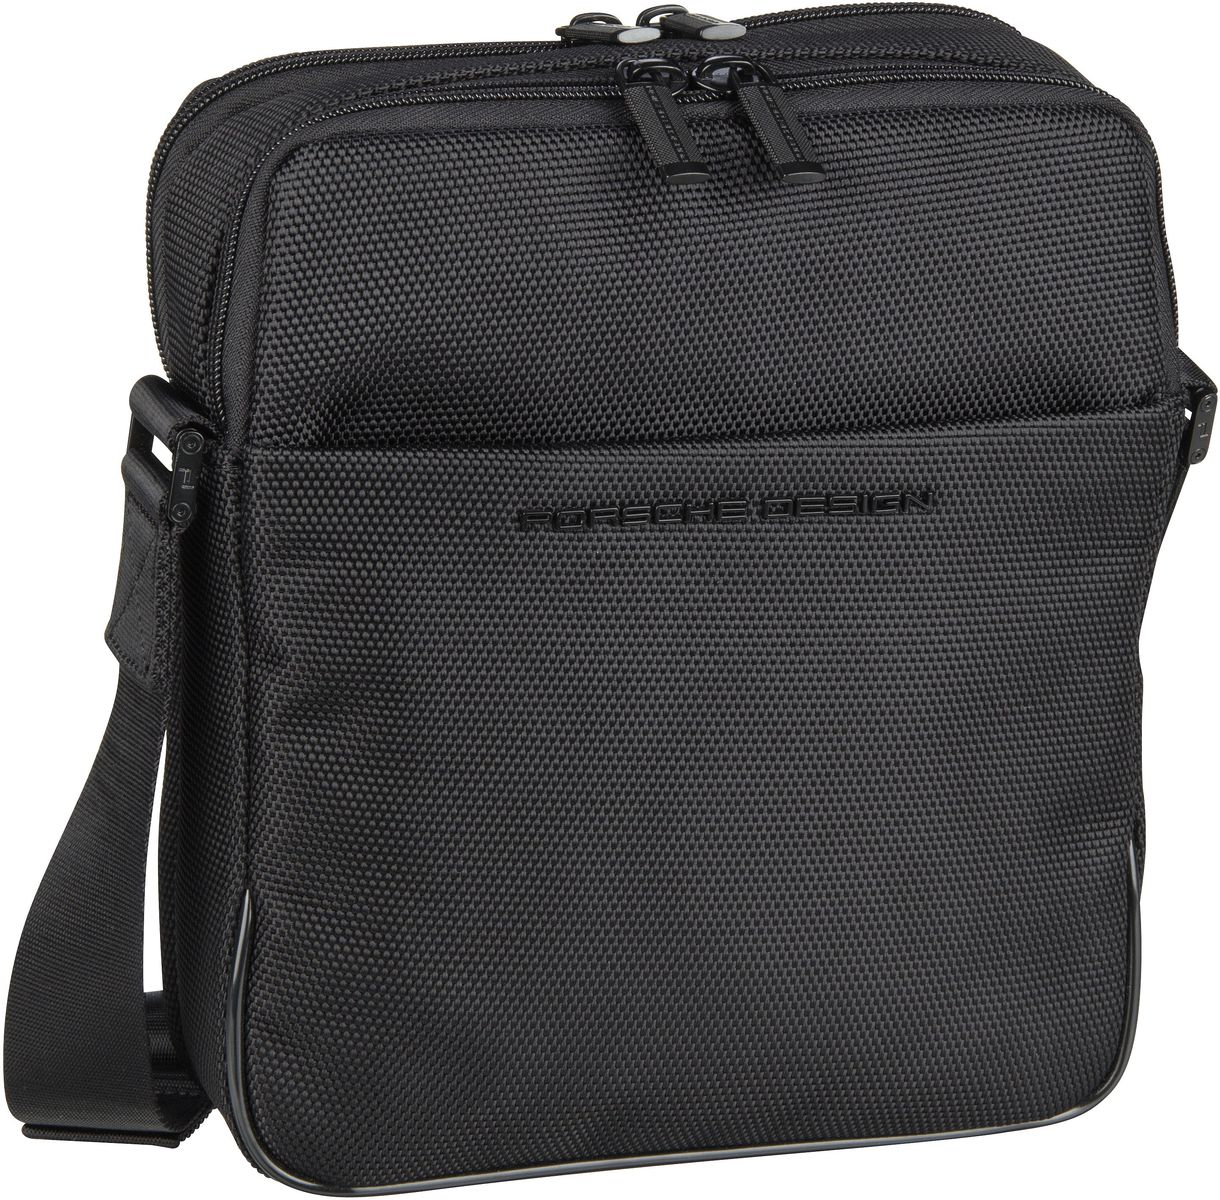 Umhängetasche Roadster 4.1 ShoulderBag SVZ Black